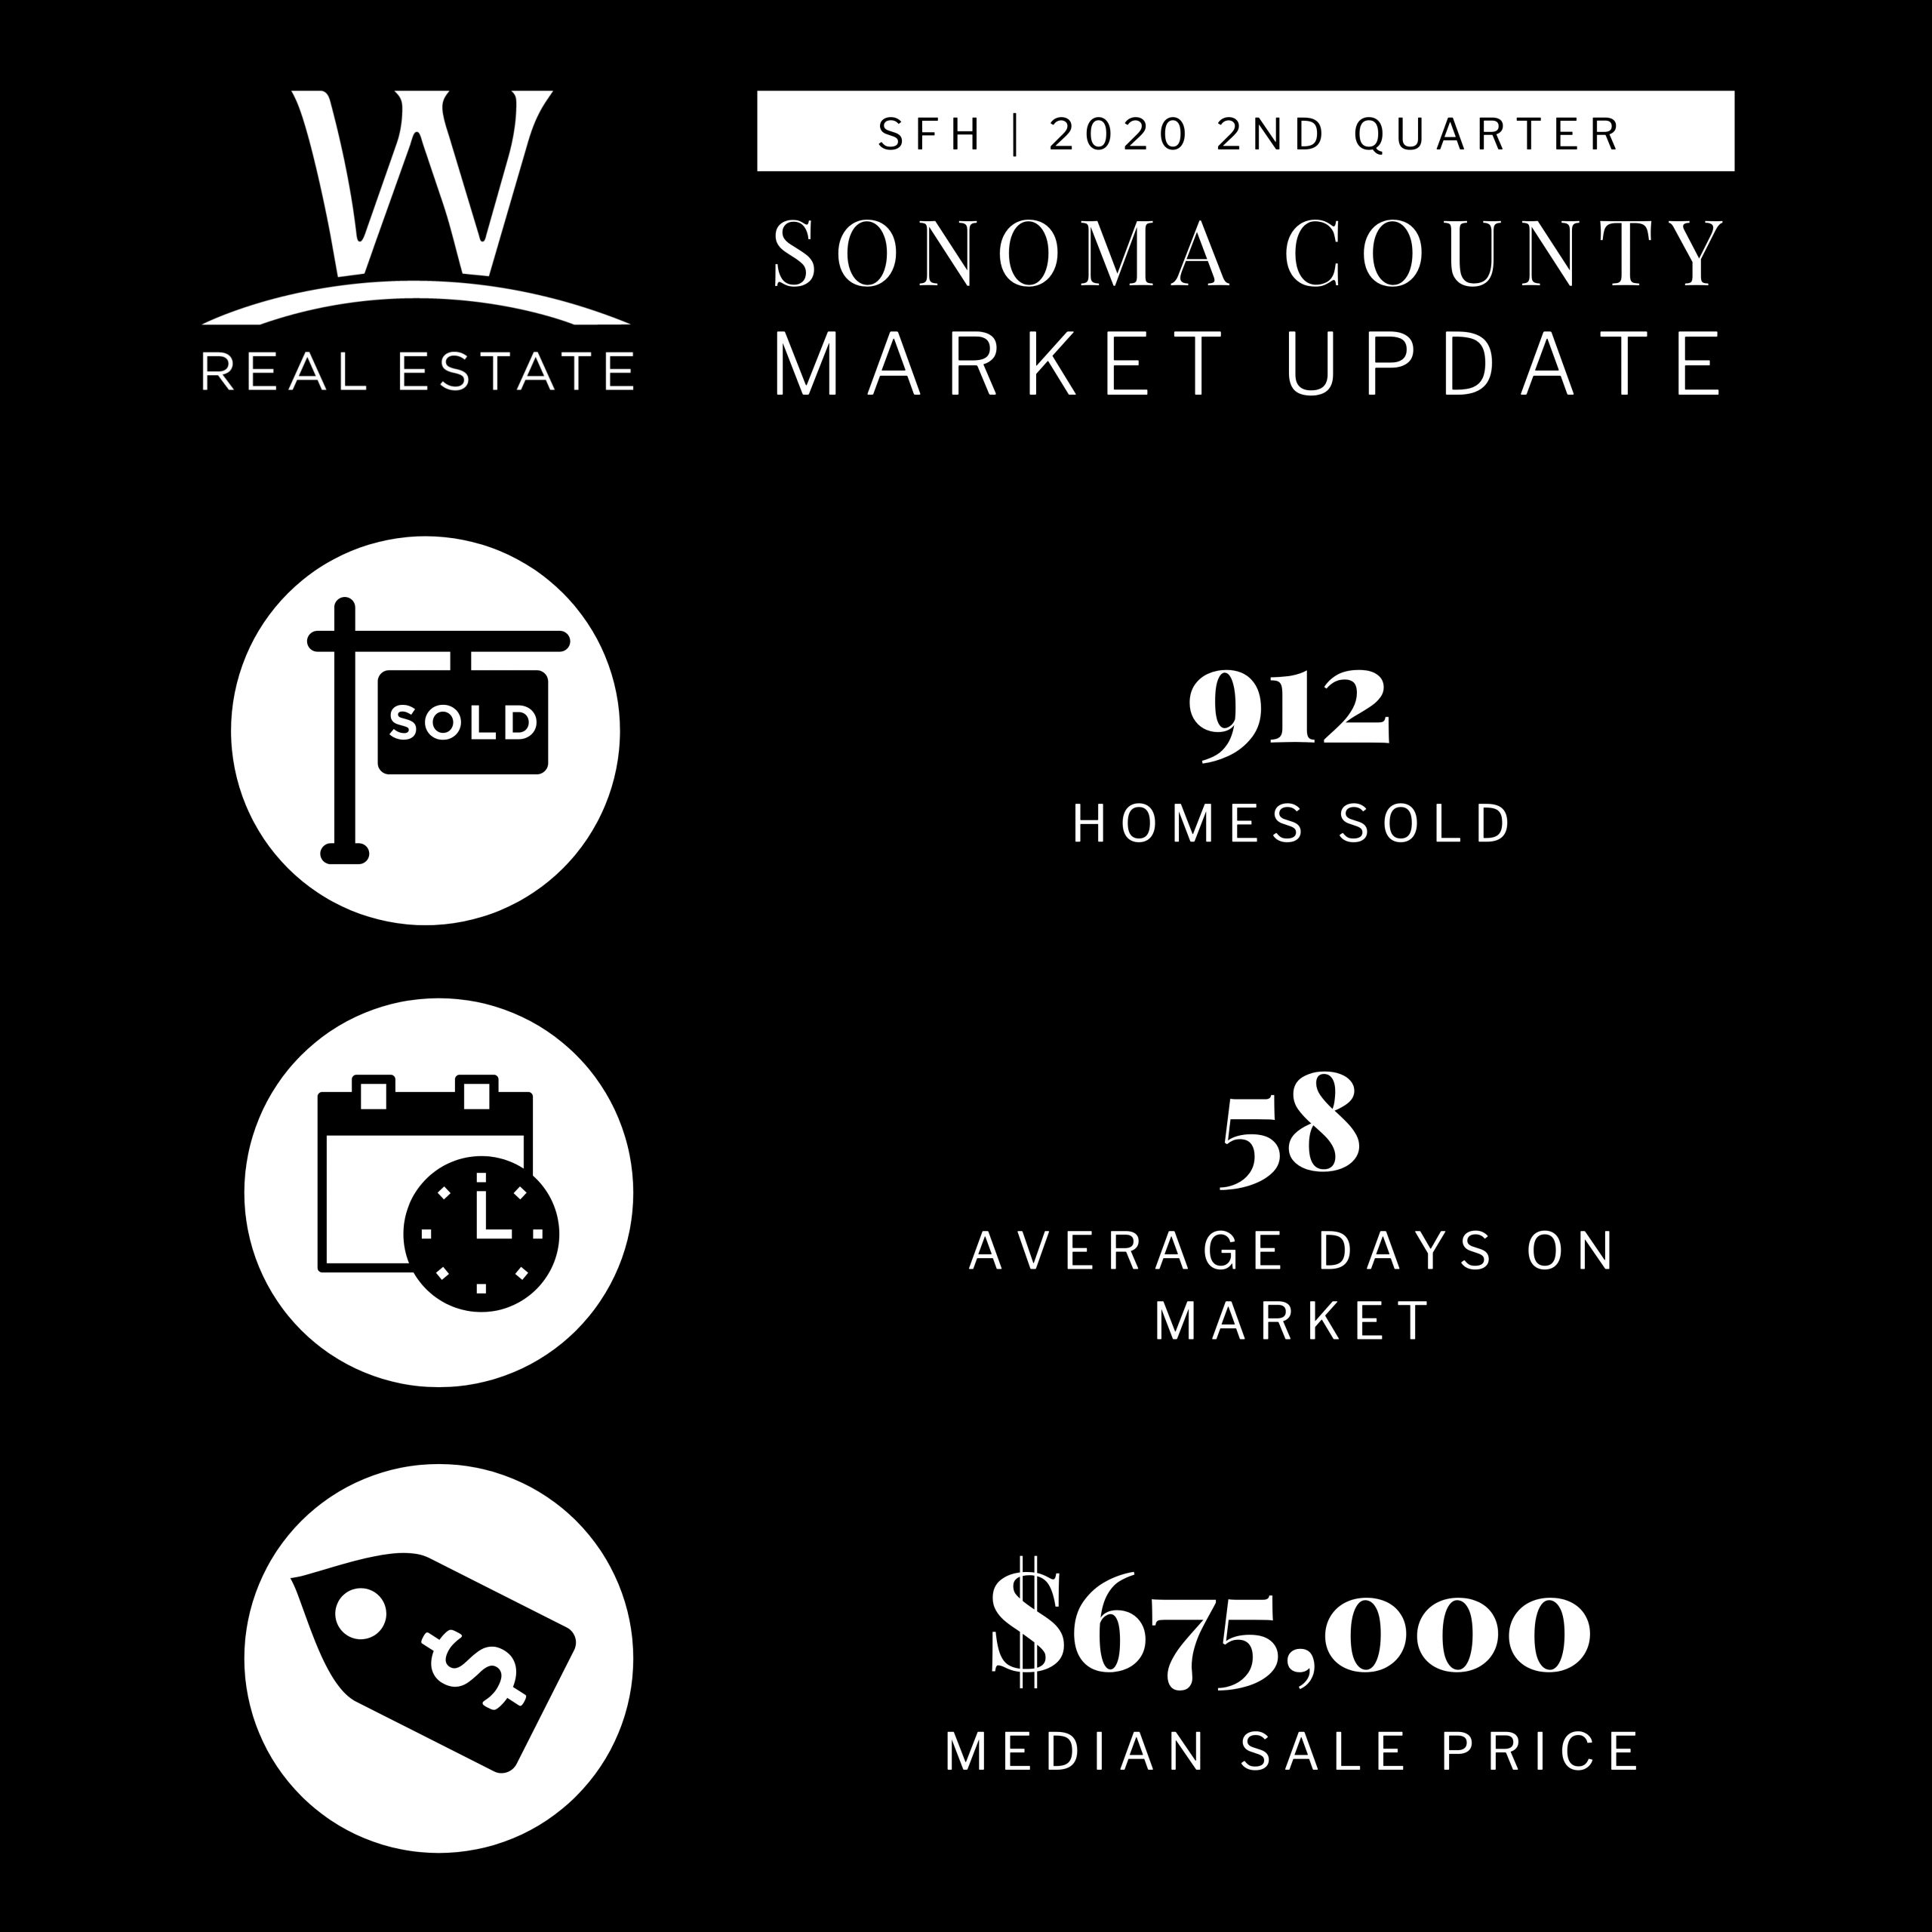 Sonoma County 2nd Quarter Market Update